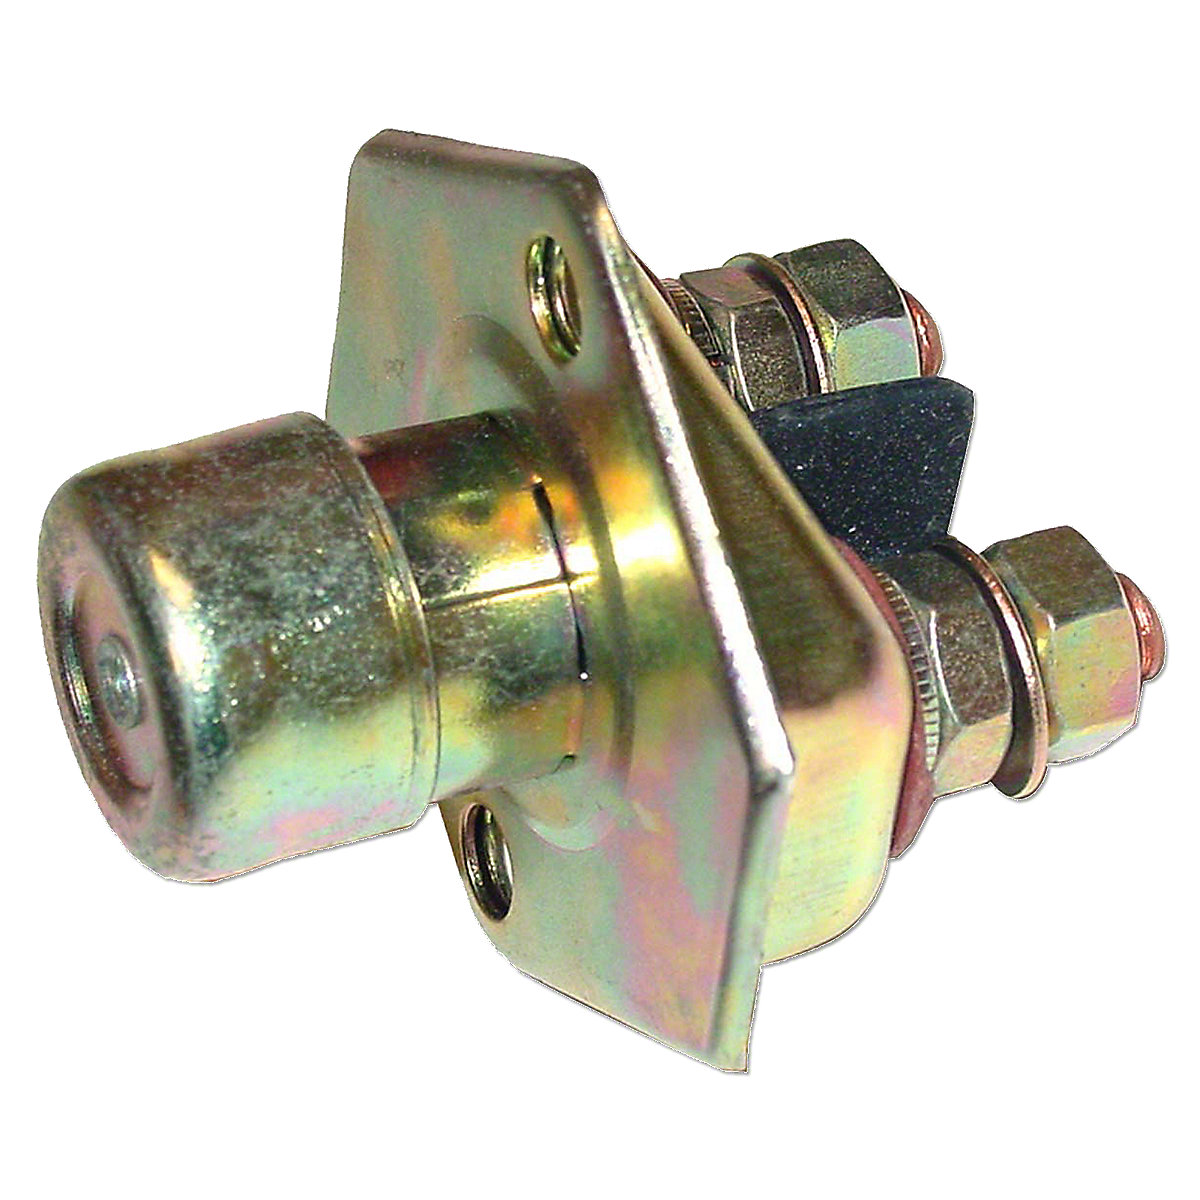 Push Button Starter Switch For Massey Ferguson: TO20, TO30.